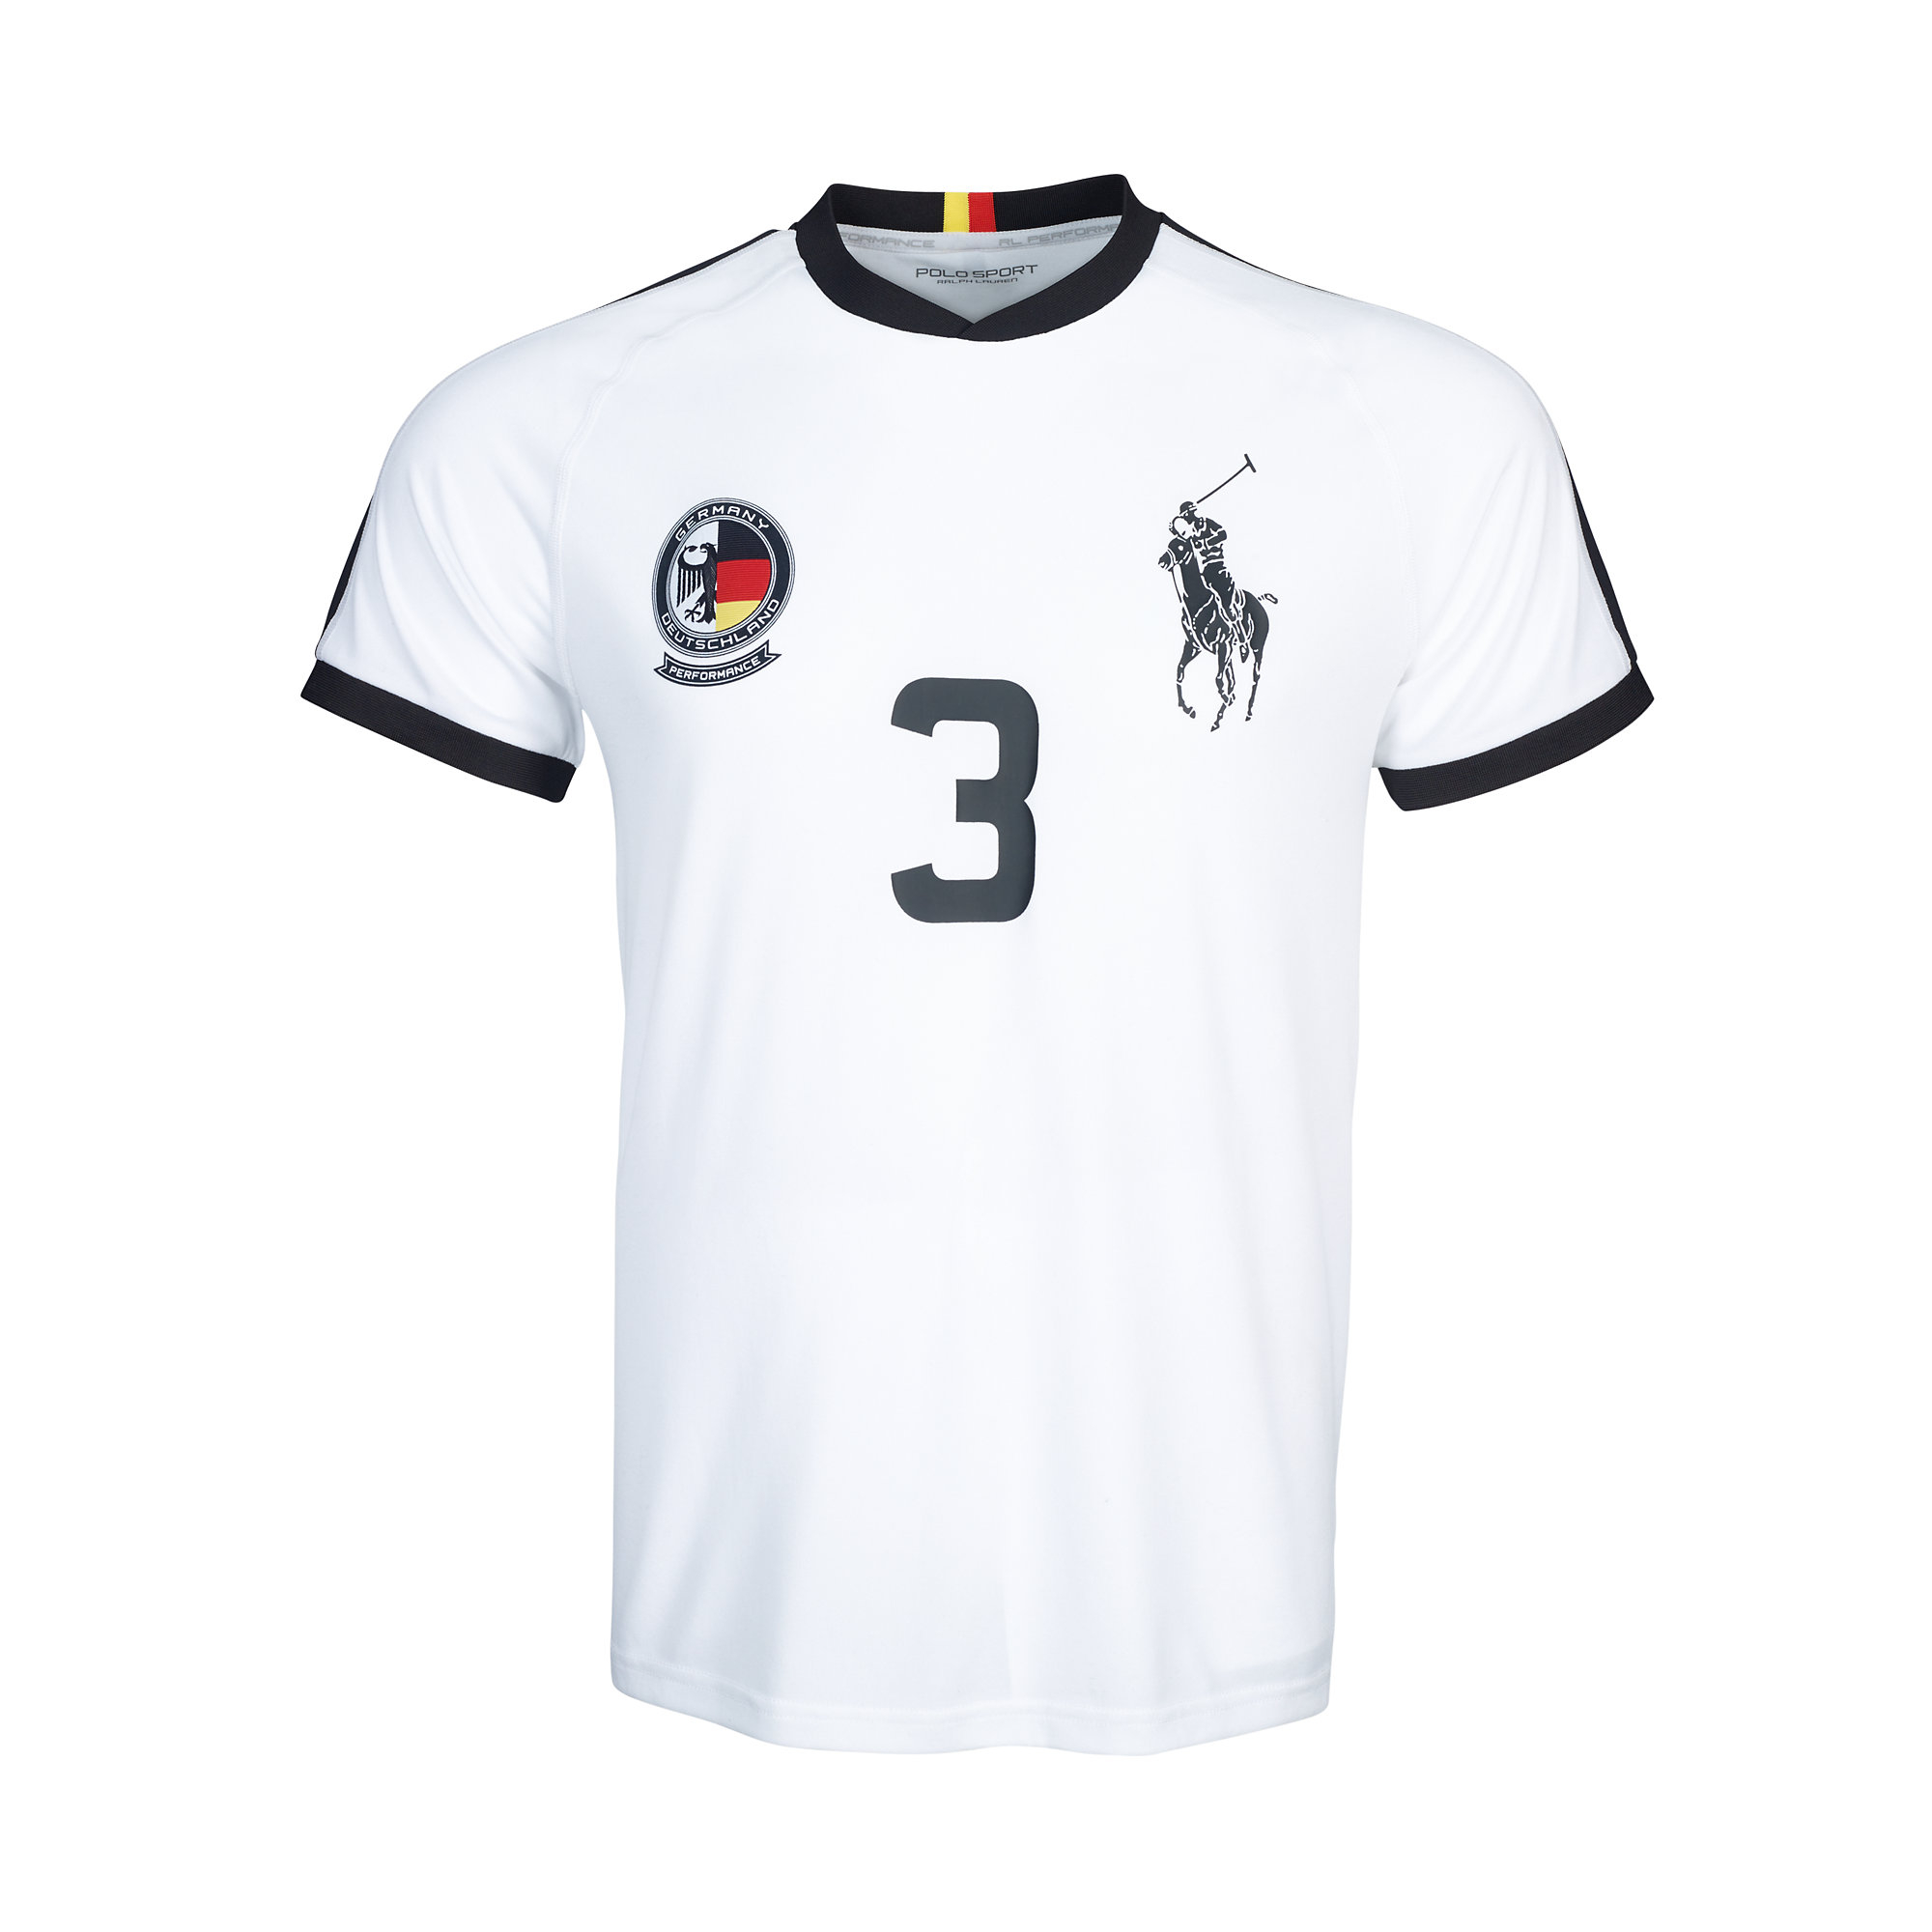 lyst ralph lauren germany jersey t shirt in white for men. Black Bedroom Furniture Sets. Home Design Ideas